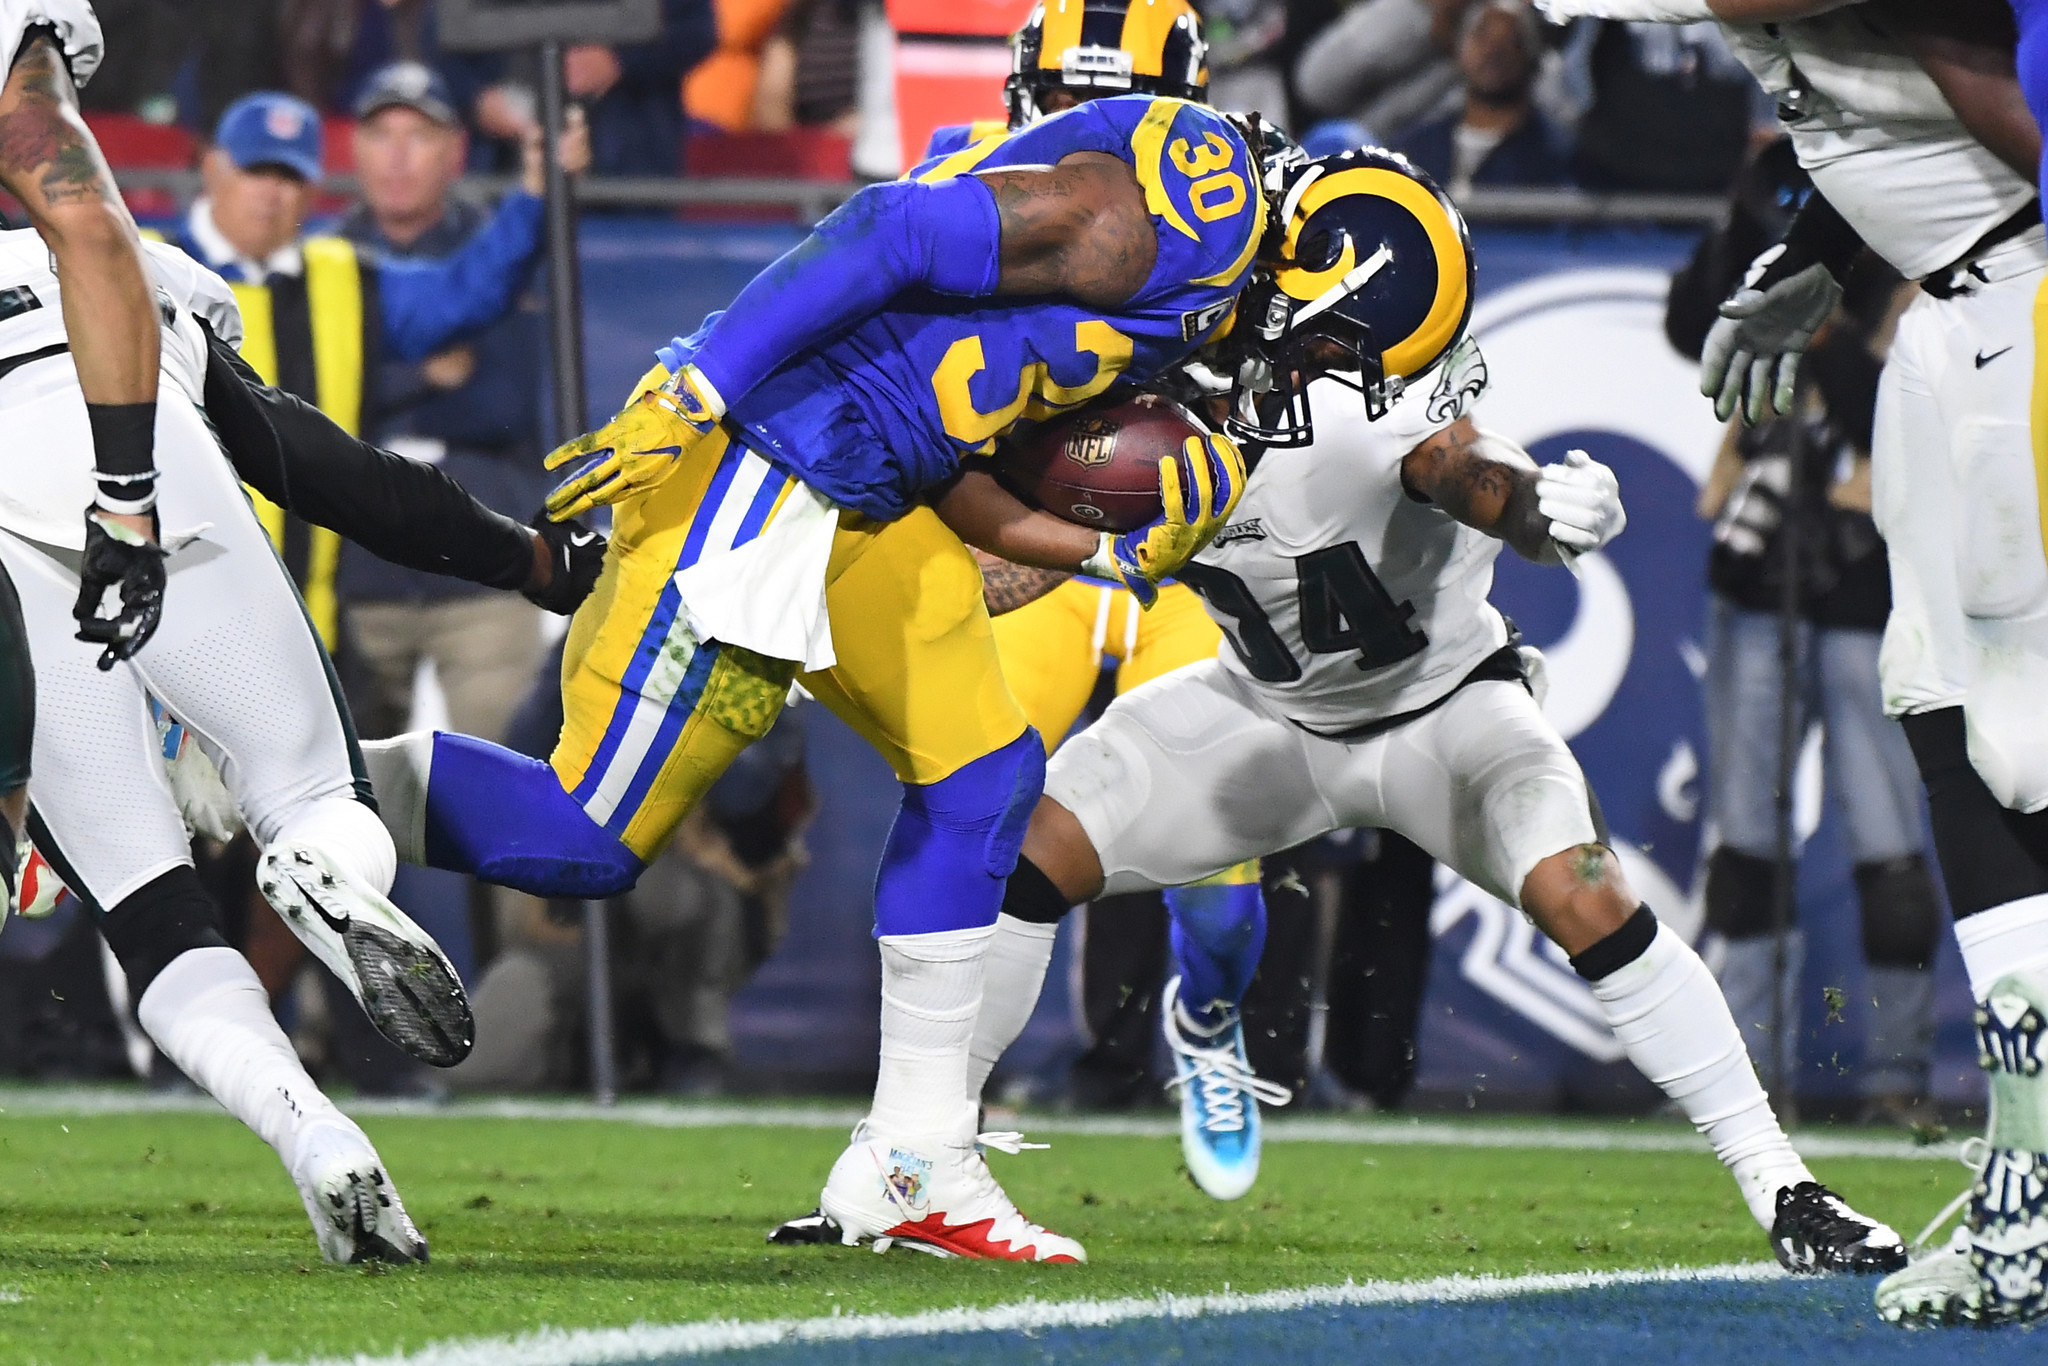 Todd Gurley hurts knee, but Rams play on until star running back returns